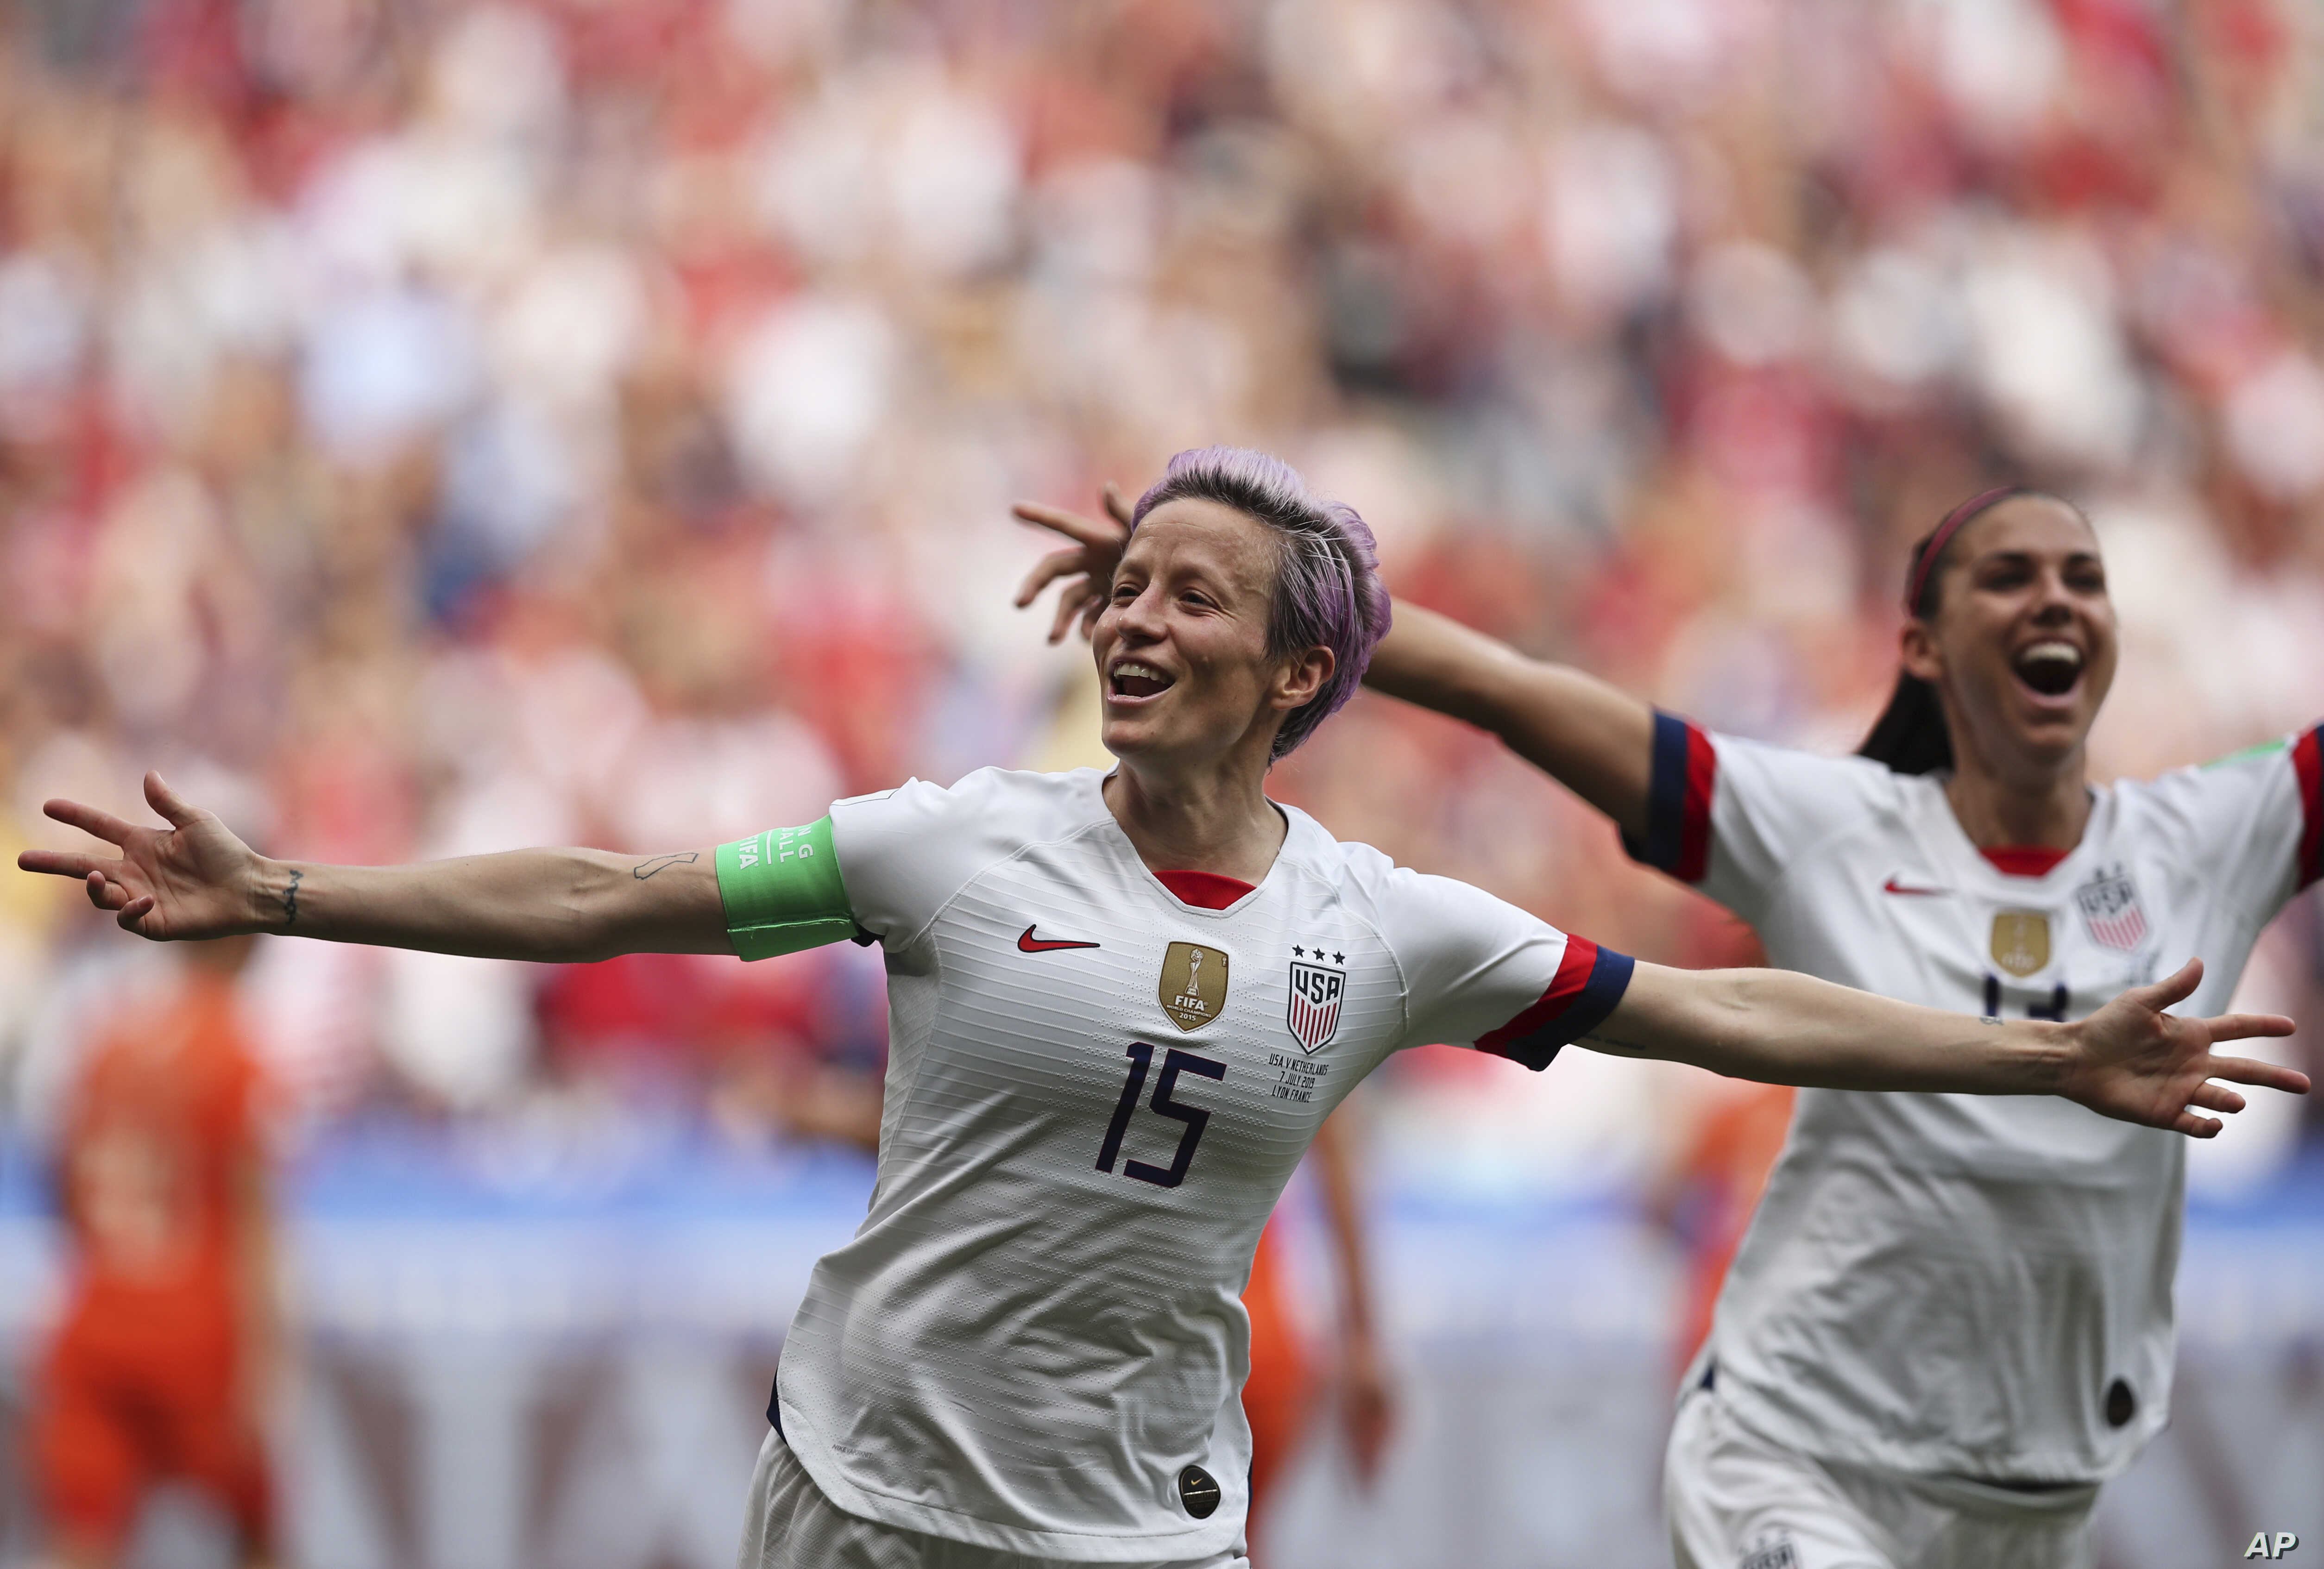 U.S. player Megan Rapinoe celebrates after scoring the opening goal during the World Cup final match against The Netherlands outside Lyon, France, July 7, 2019.